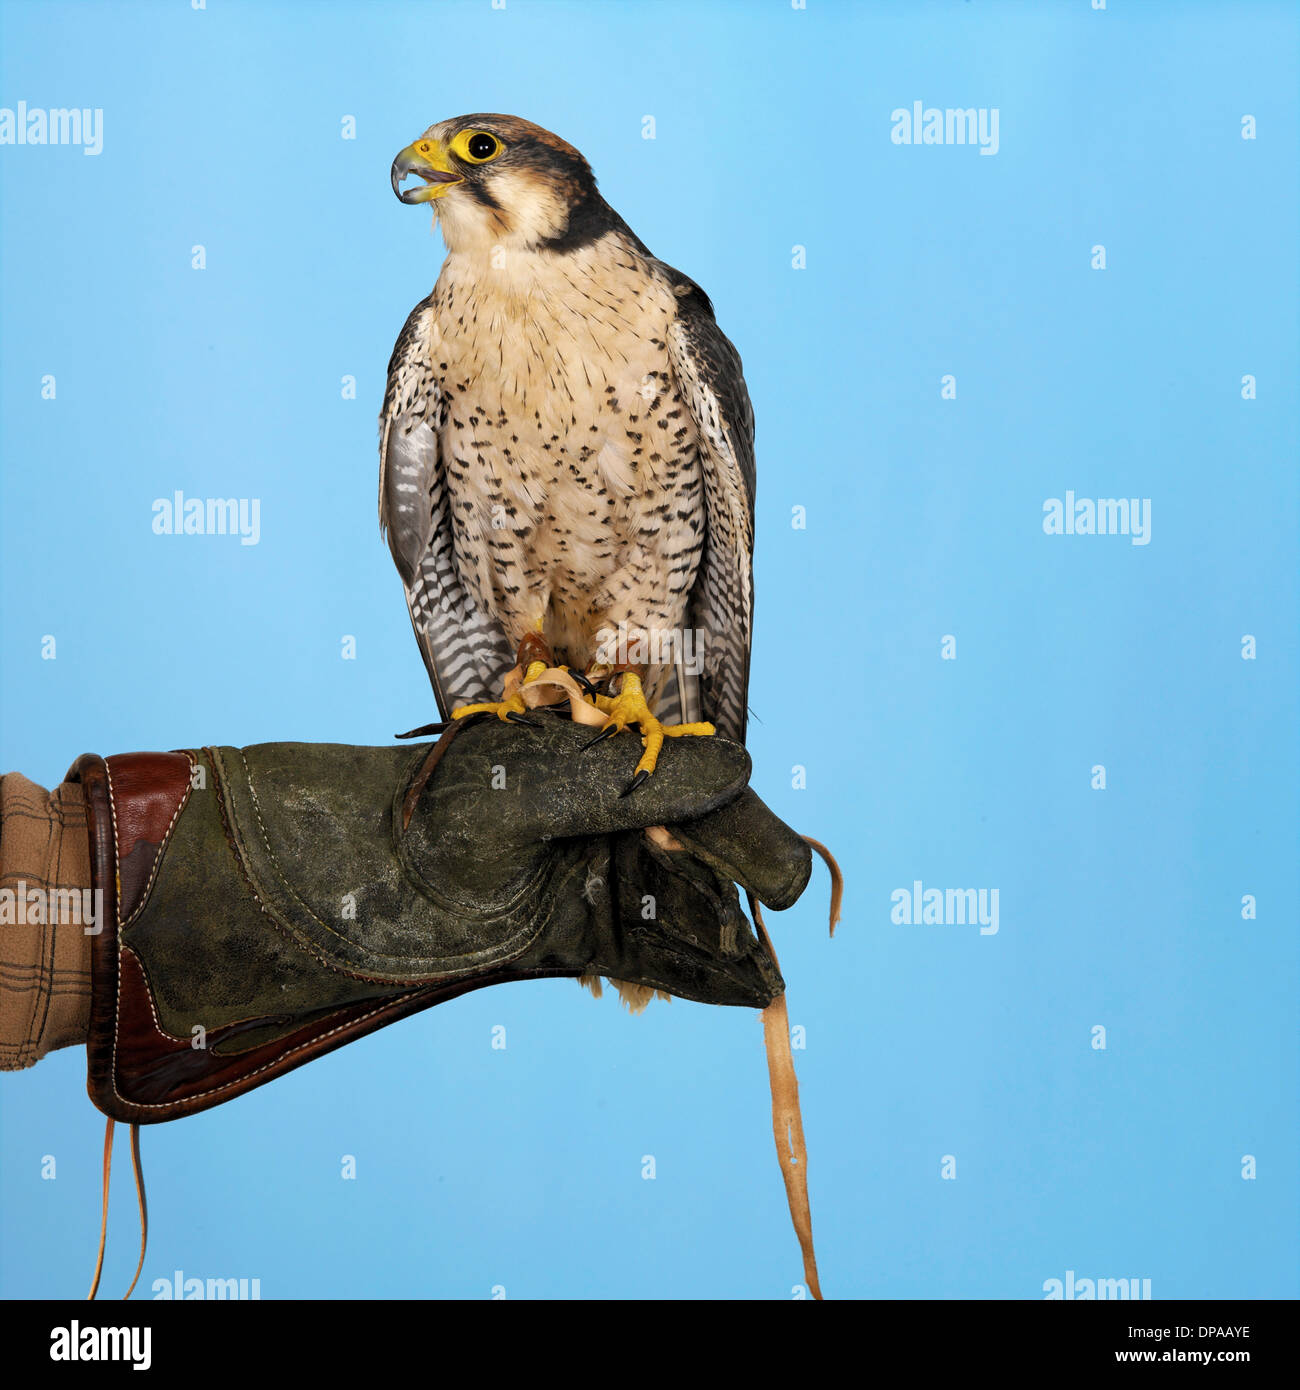 Lanner Falcon perched on hand - Stock Image